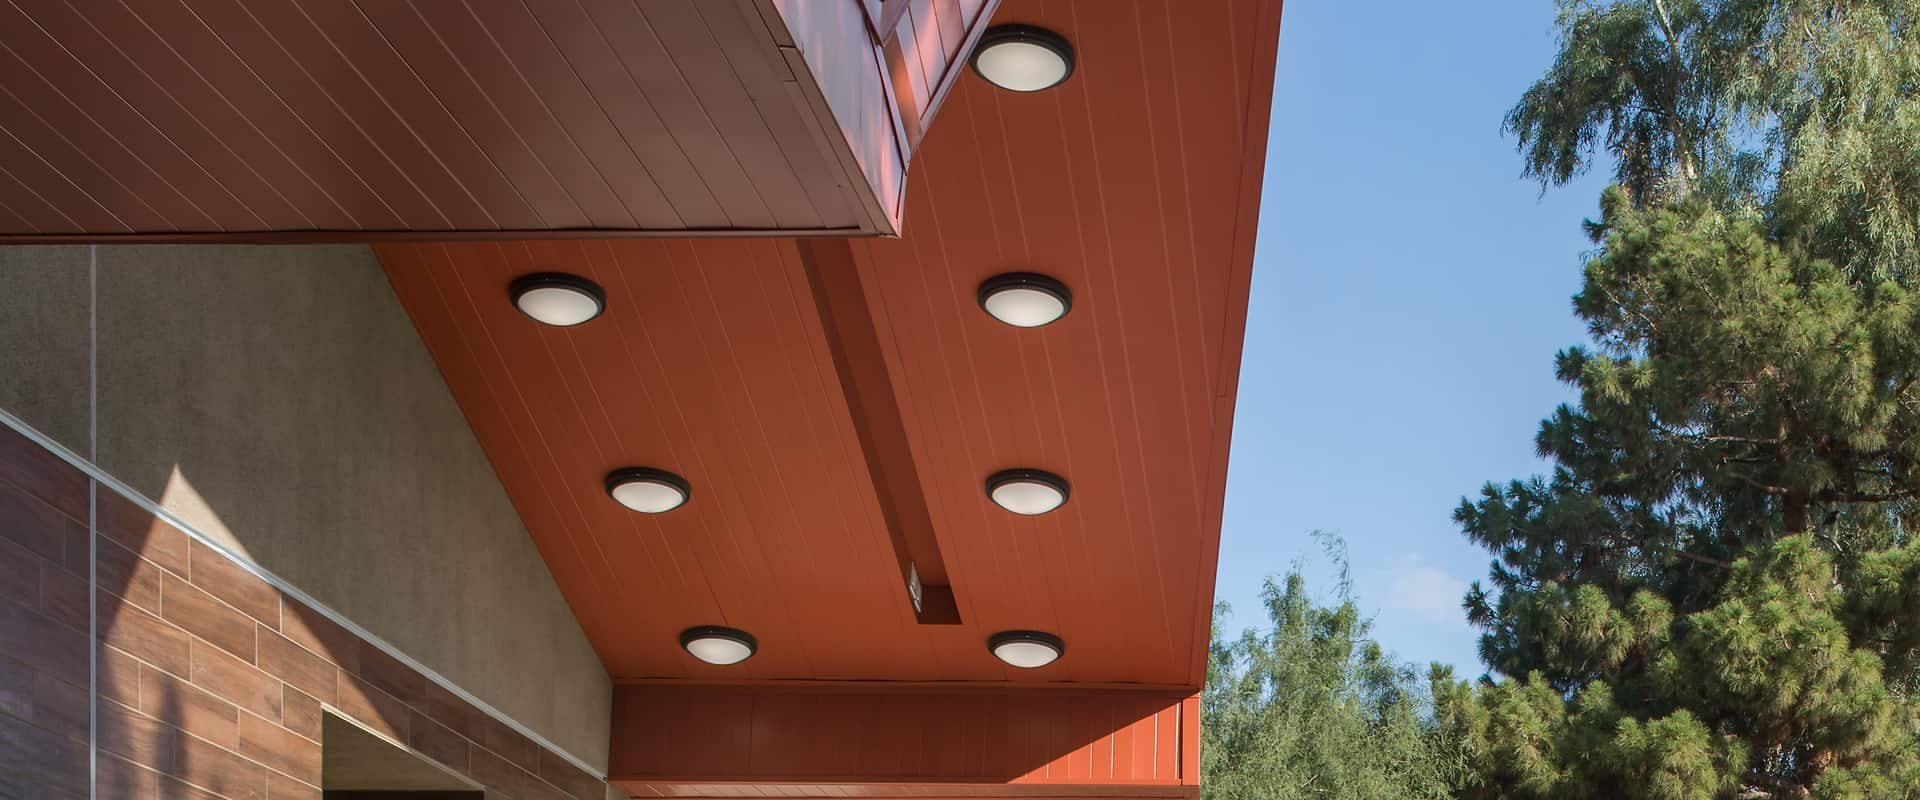 The overhang at the Winchester Cultural Center expansion in Las Vegas, NV.